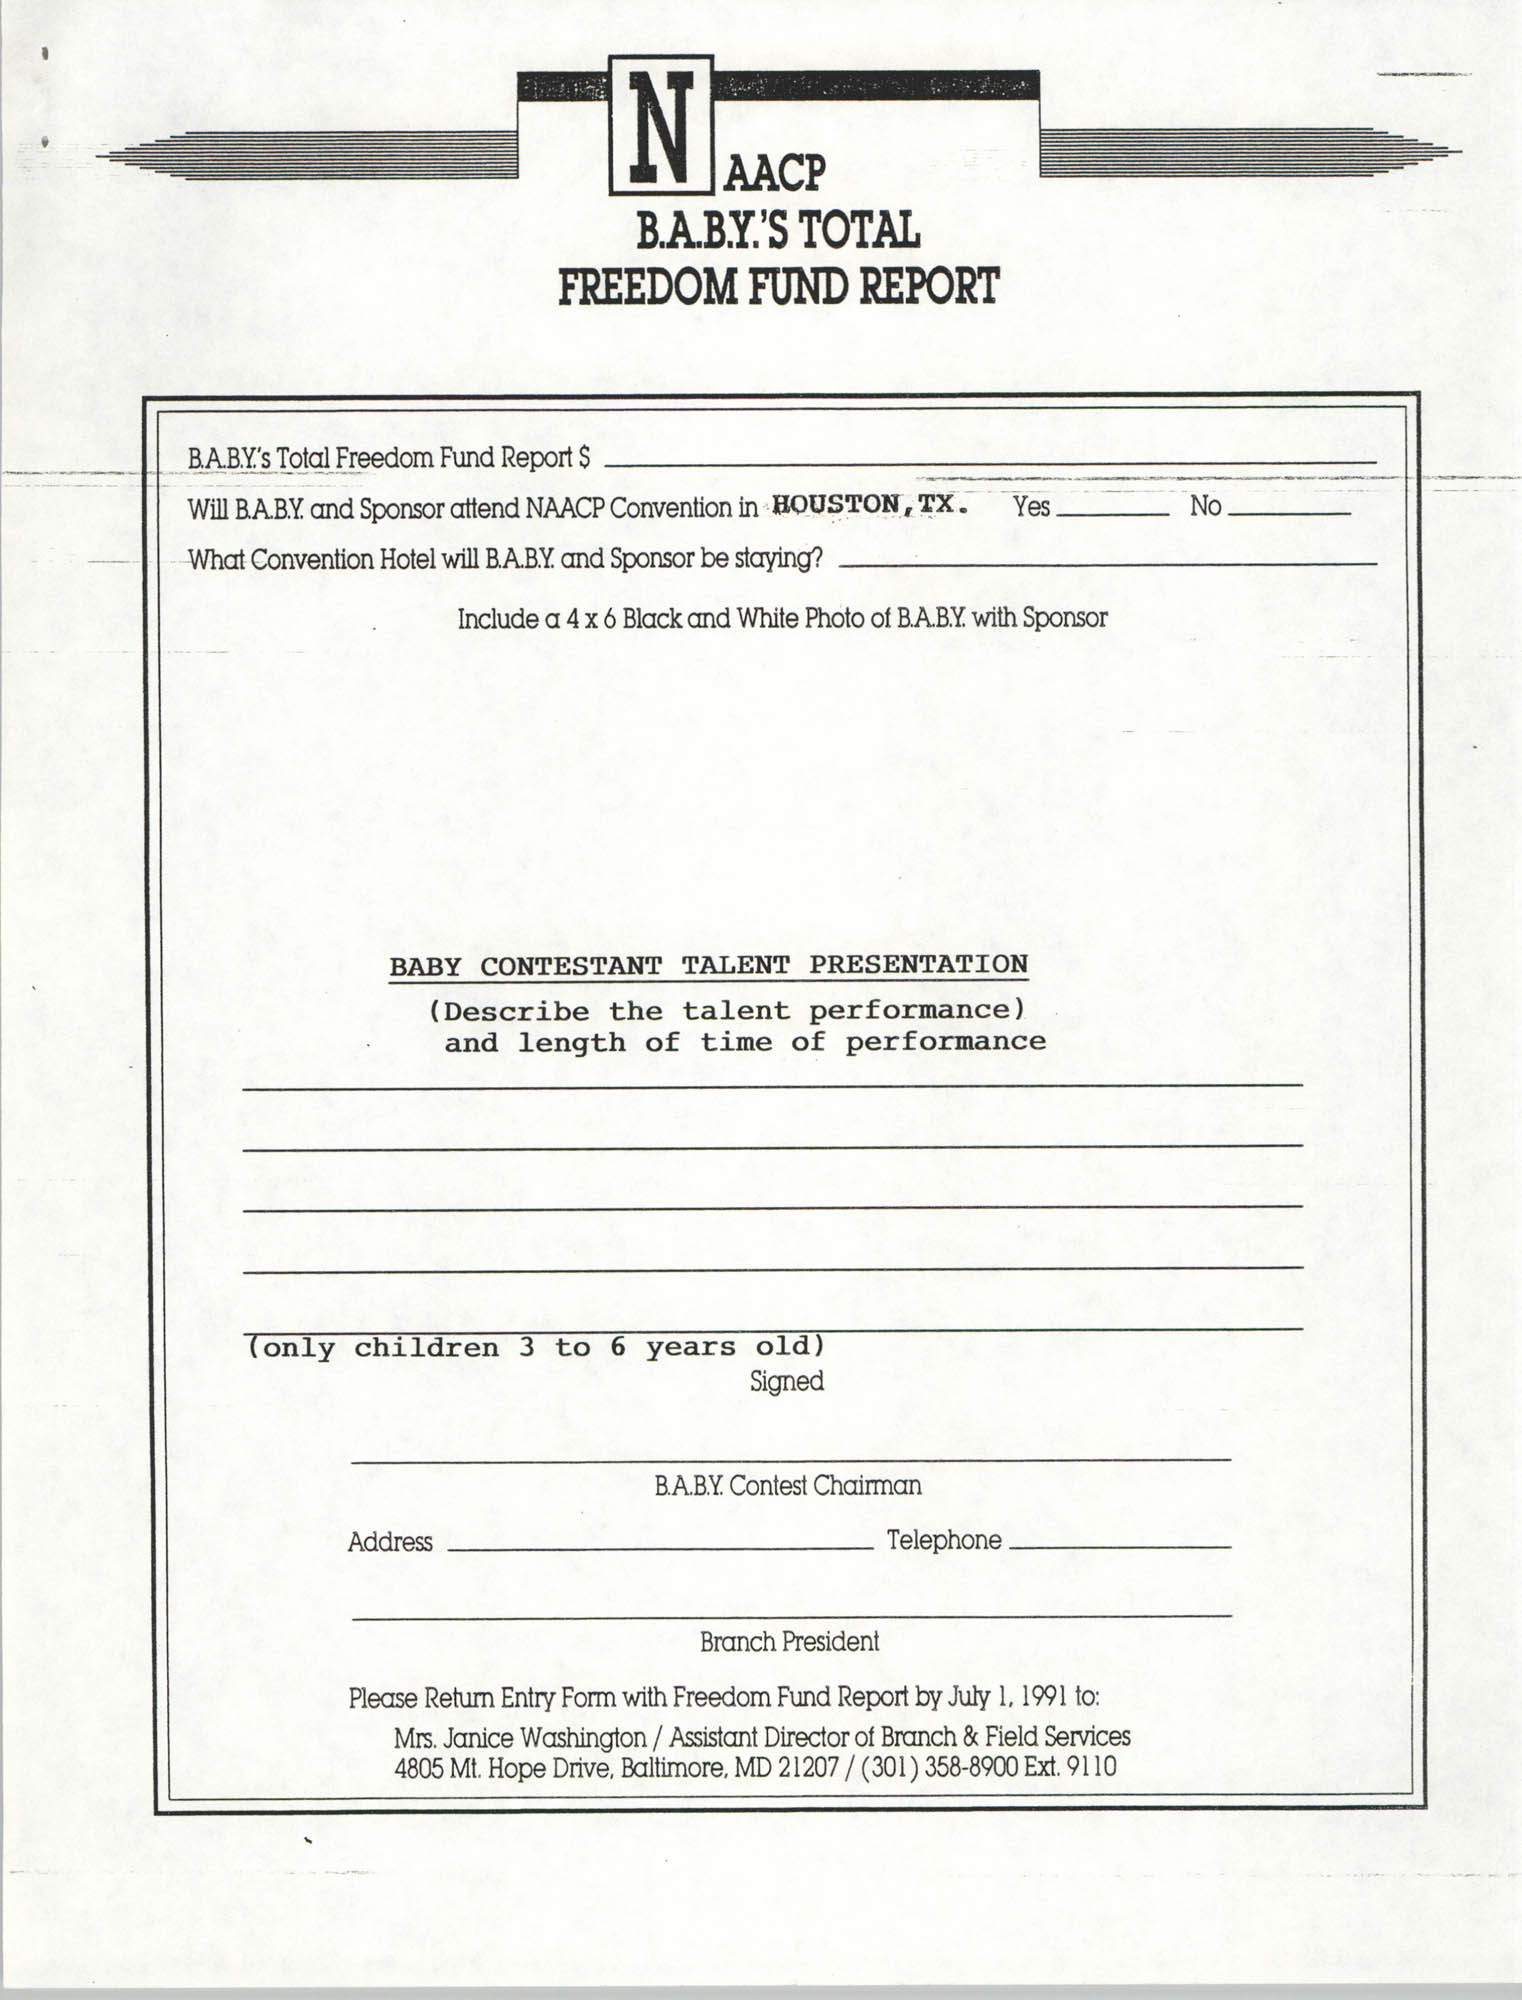 National Baby For Freedom Contest, NAACP, March 1991, Page 5